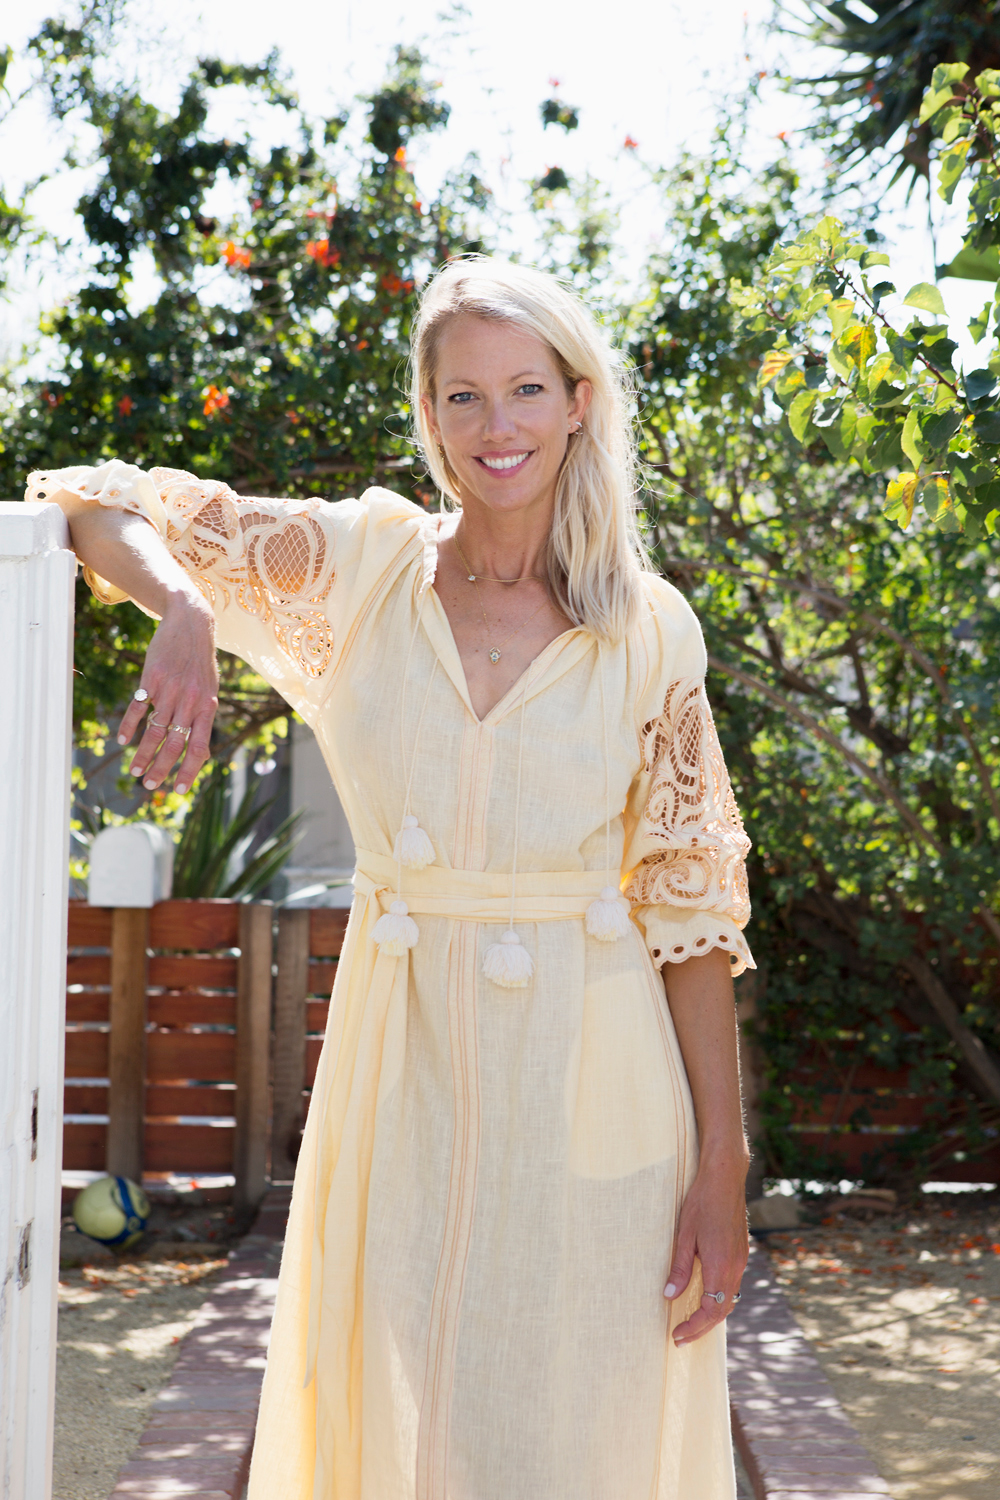 LARA EINZEG -THE GRACE TALES - Lara Einzeg invites us to THE GRACE TALES on what is trending now.Our TAMBORINE available at VERONICA BEARD!